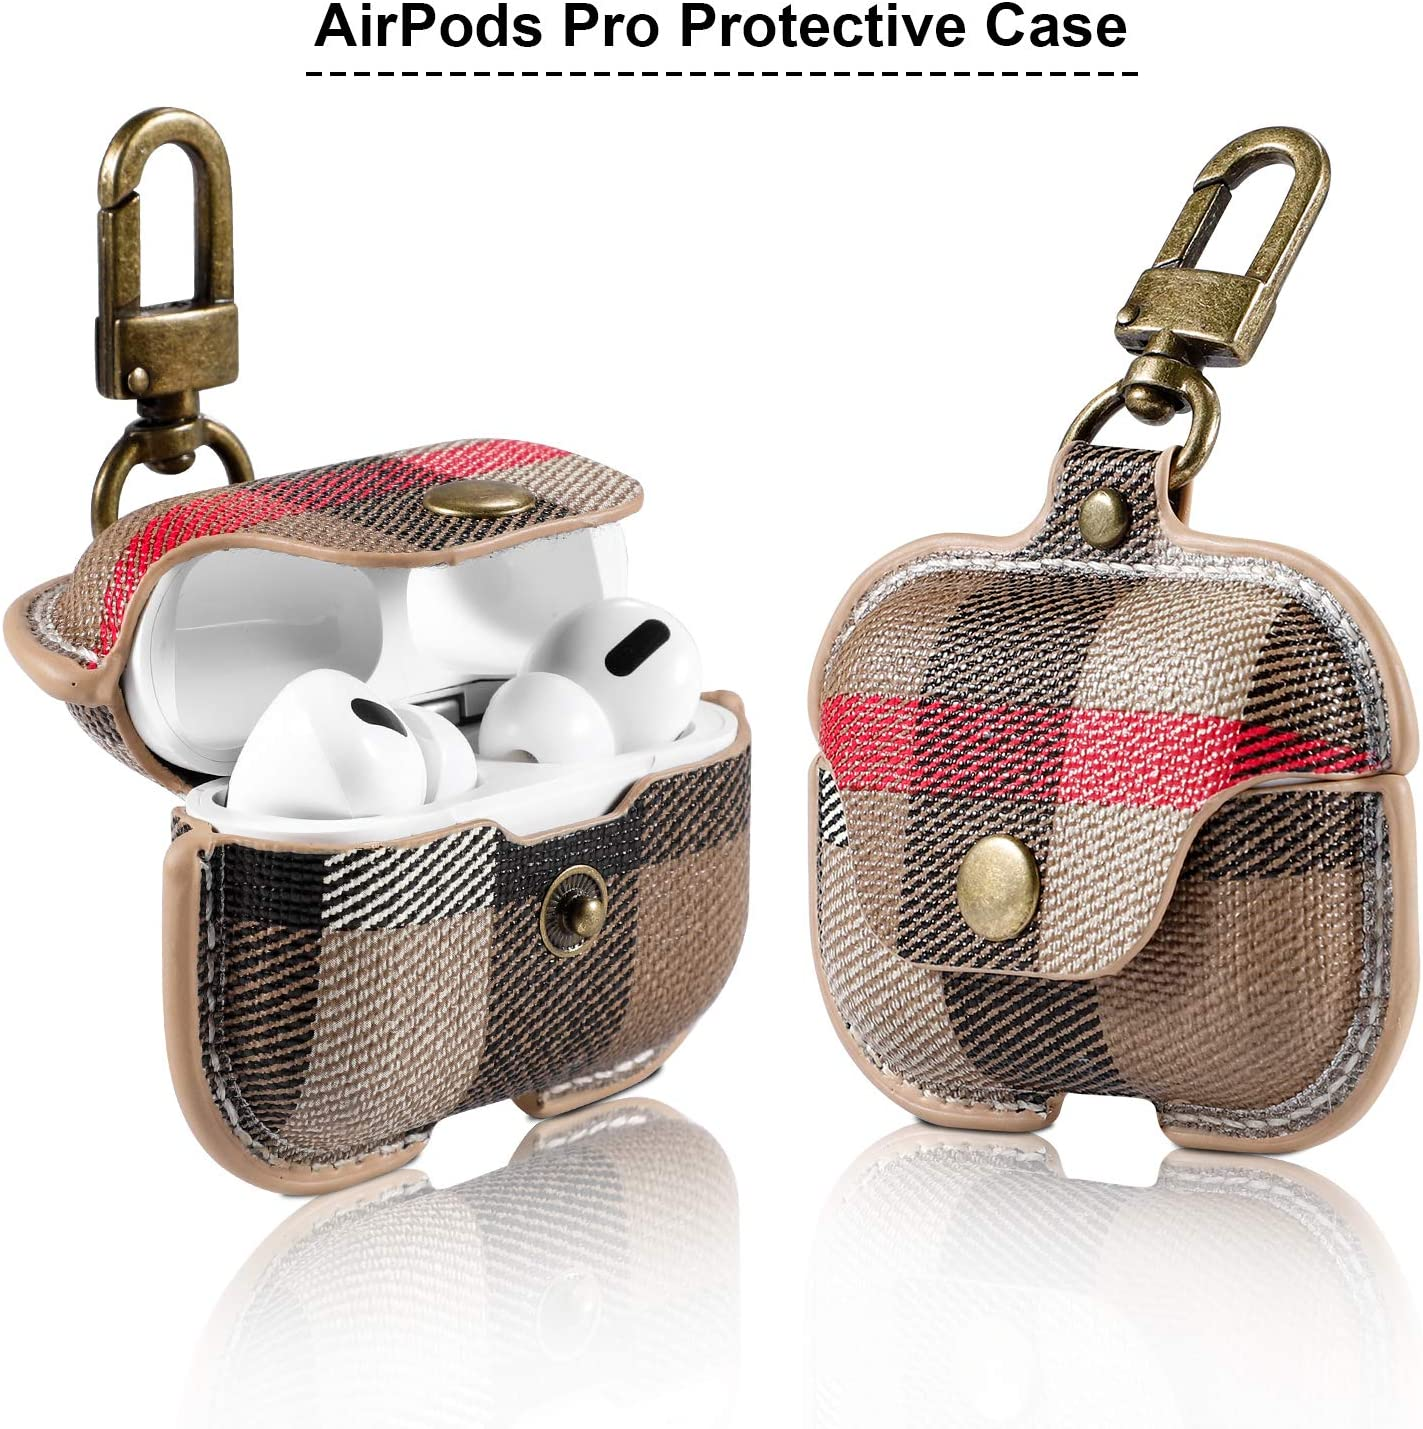 Anti-Slip Supports Wireless Charging for AirPods 3, Dust Guard Anti-Scratch AirPods Pro Protective Case Color:Black CHUANGKER PU Leather Cover with Keychain Shockproof